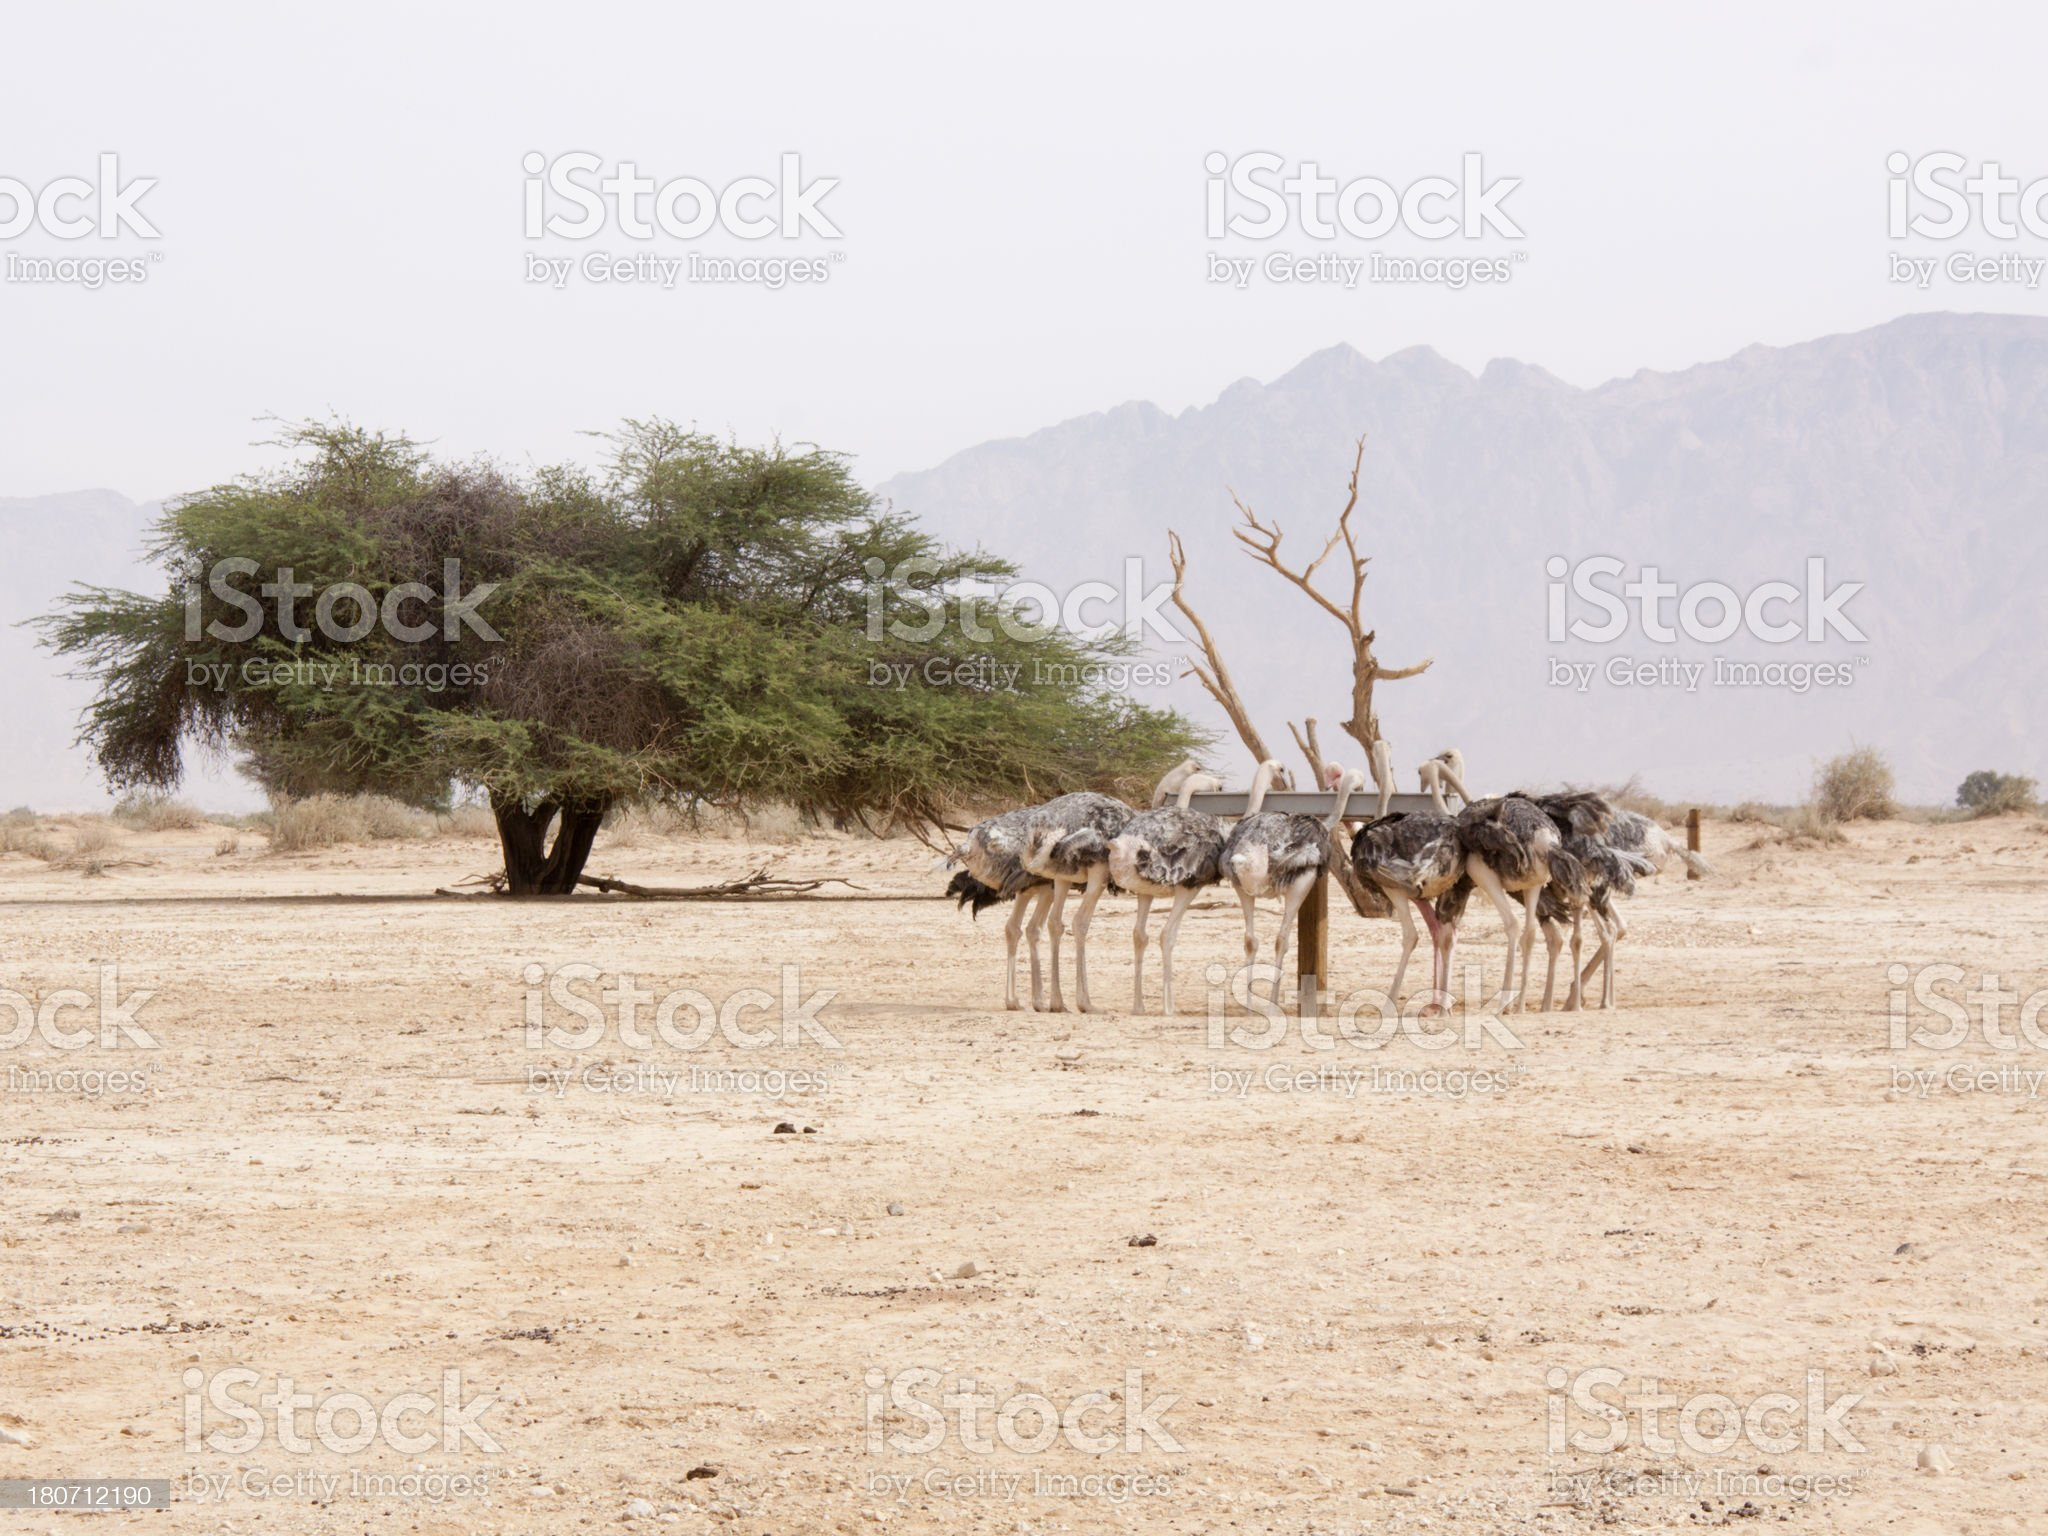 Ostriches in the desert royalty-free stock photo